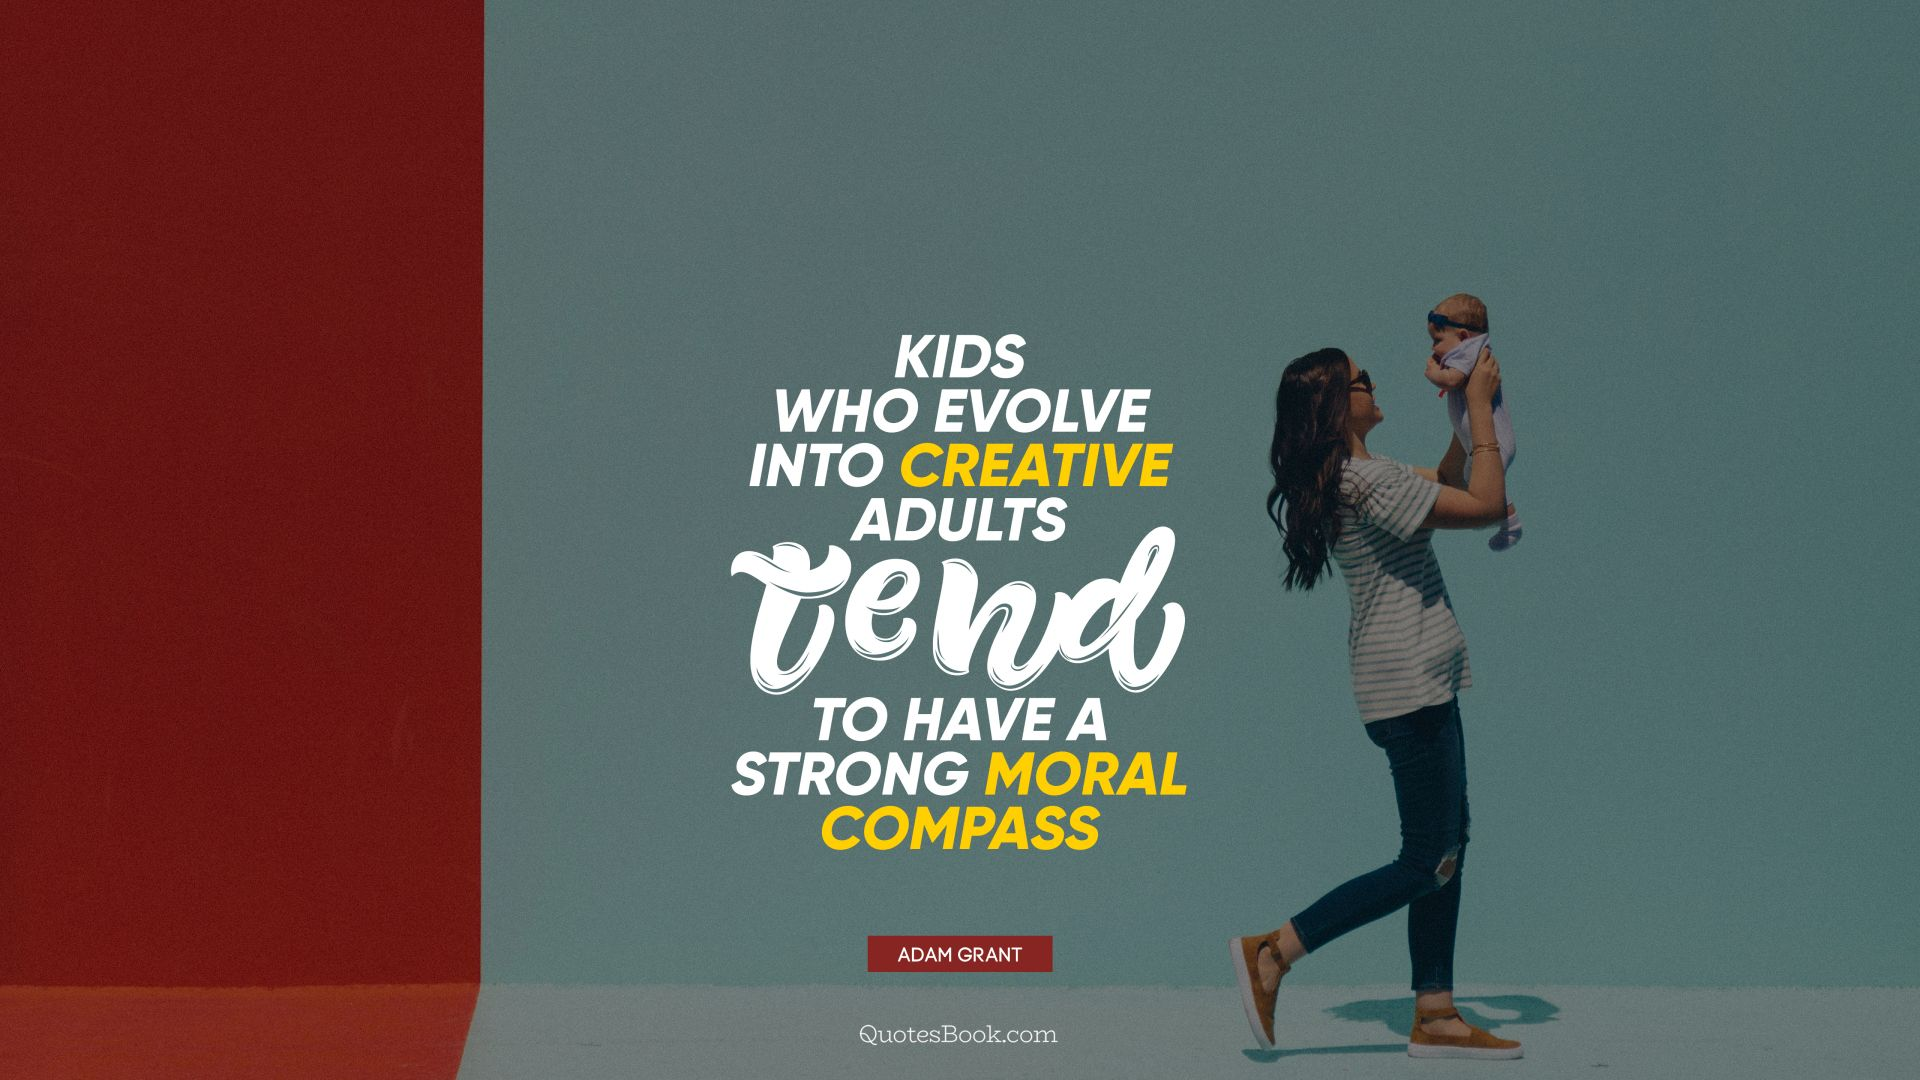 Kids who evolve into creative adults tend to have a strong moral compass. - Quote by Adam Grant